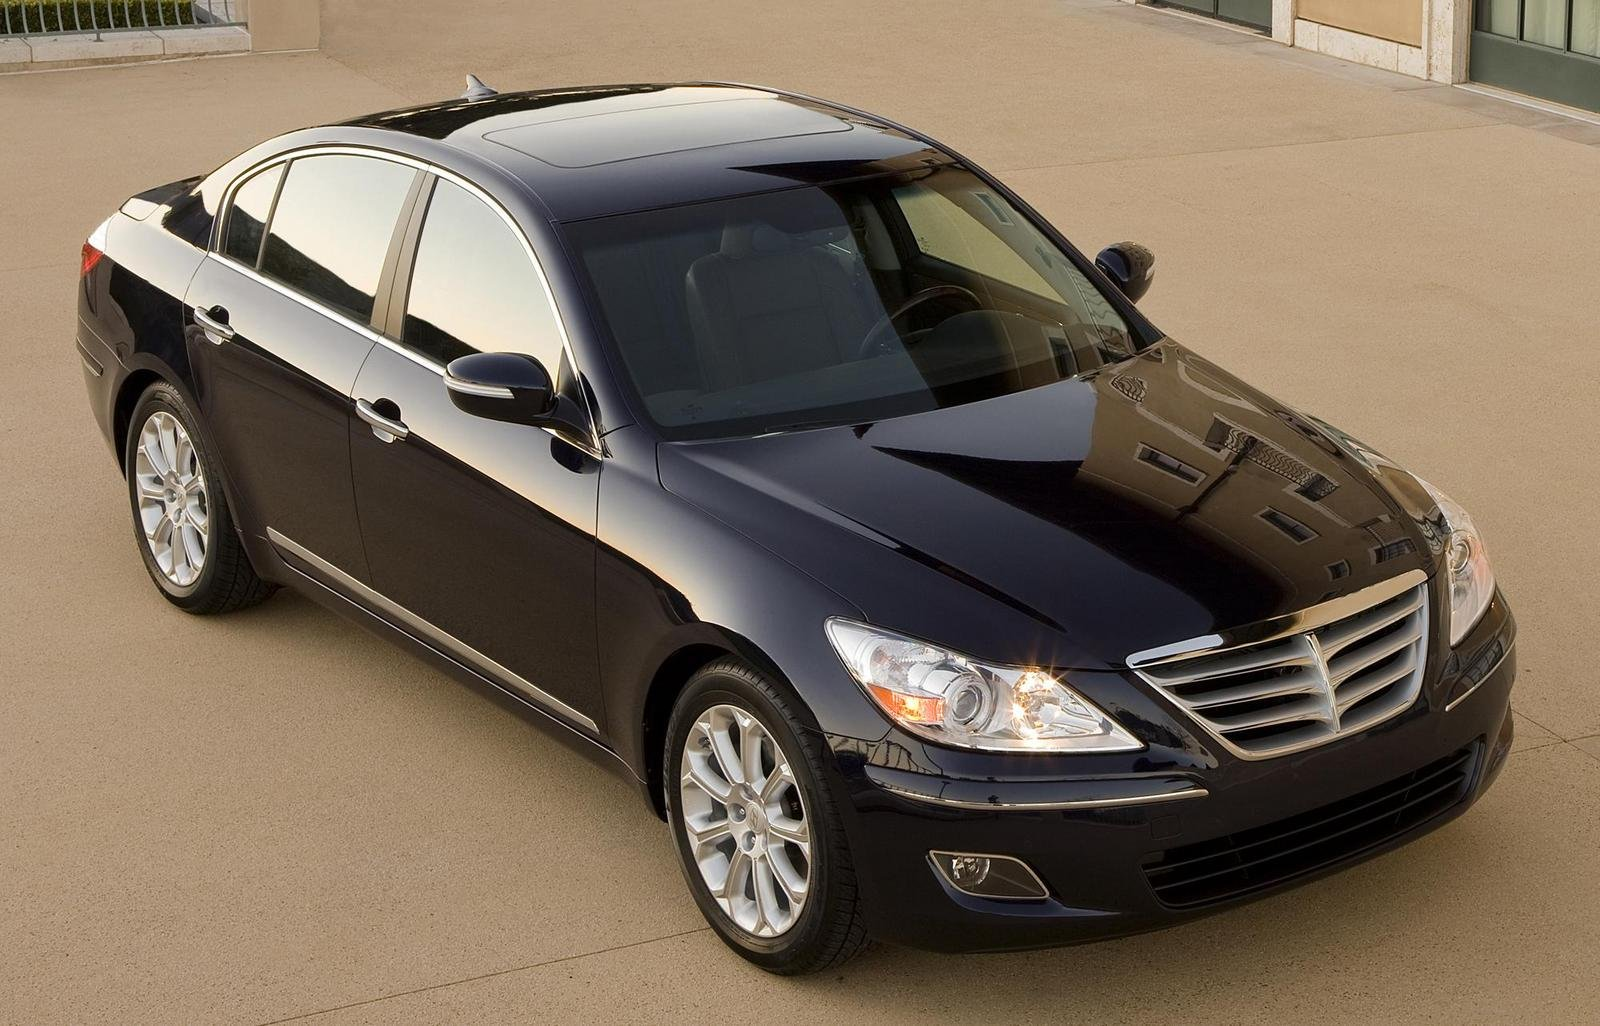 Cars For Sale In Detroit >> 2008 Hyundai Genesis Review - Top Speed